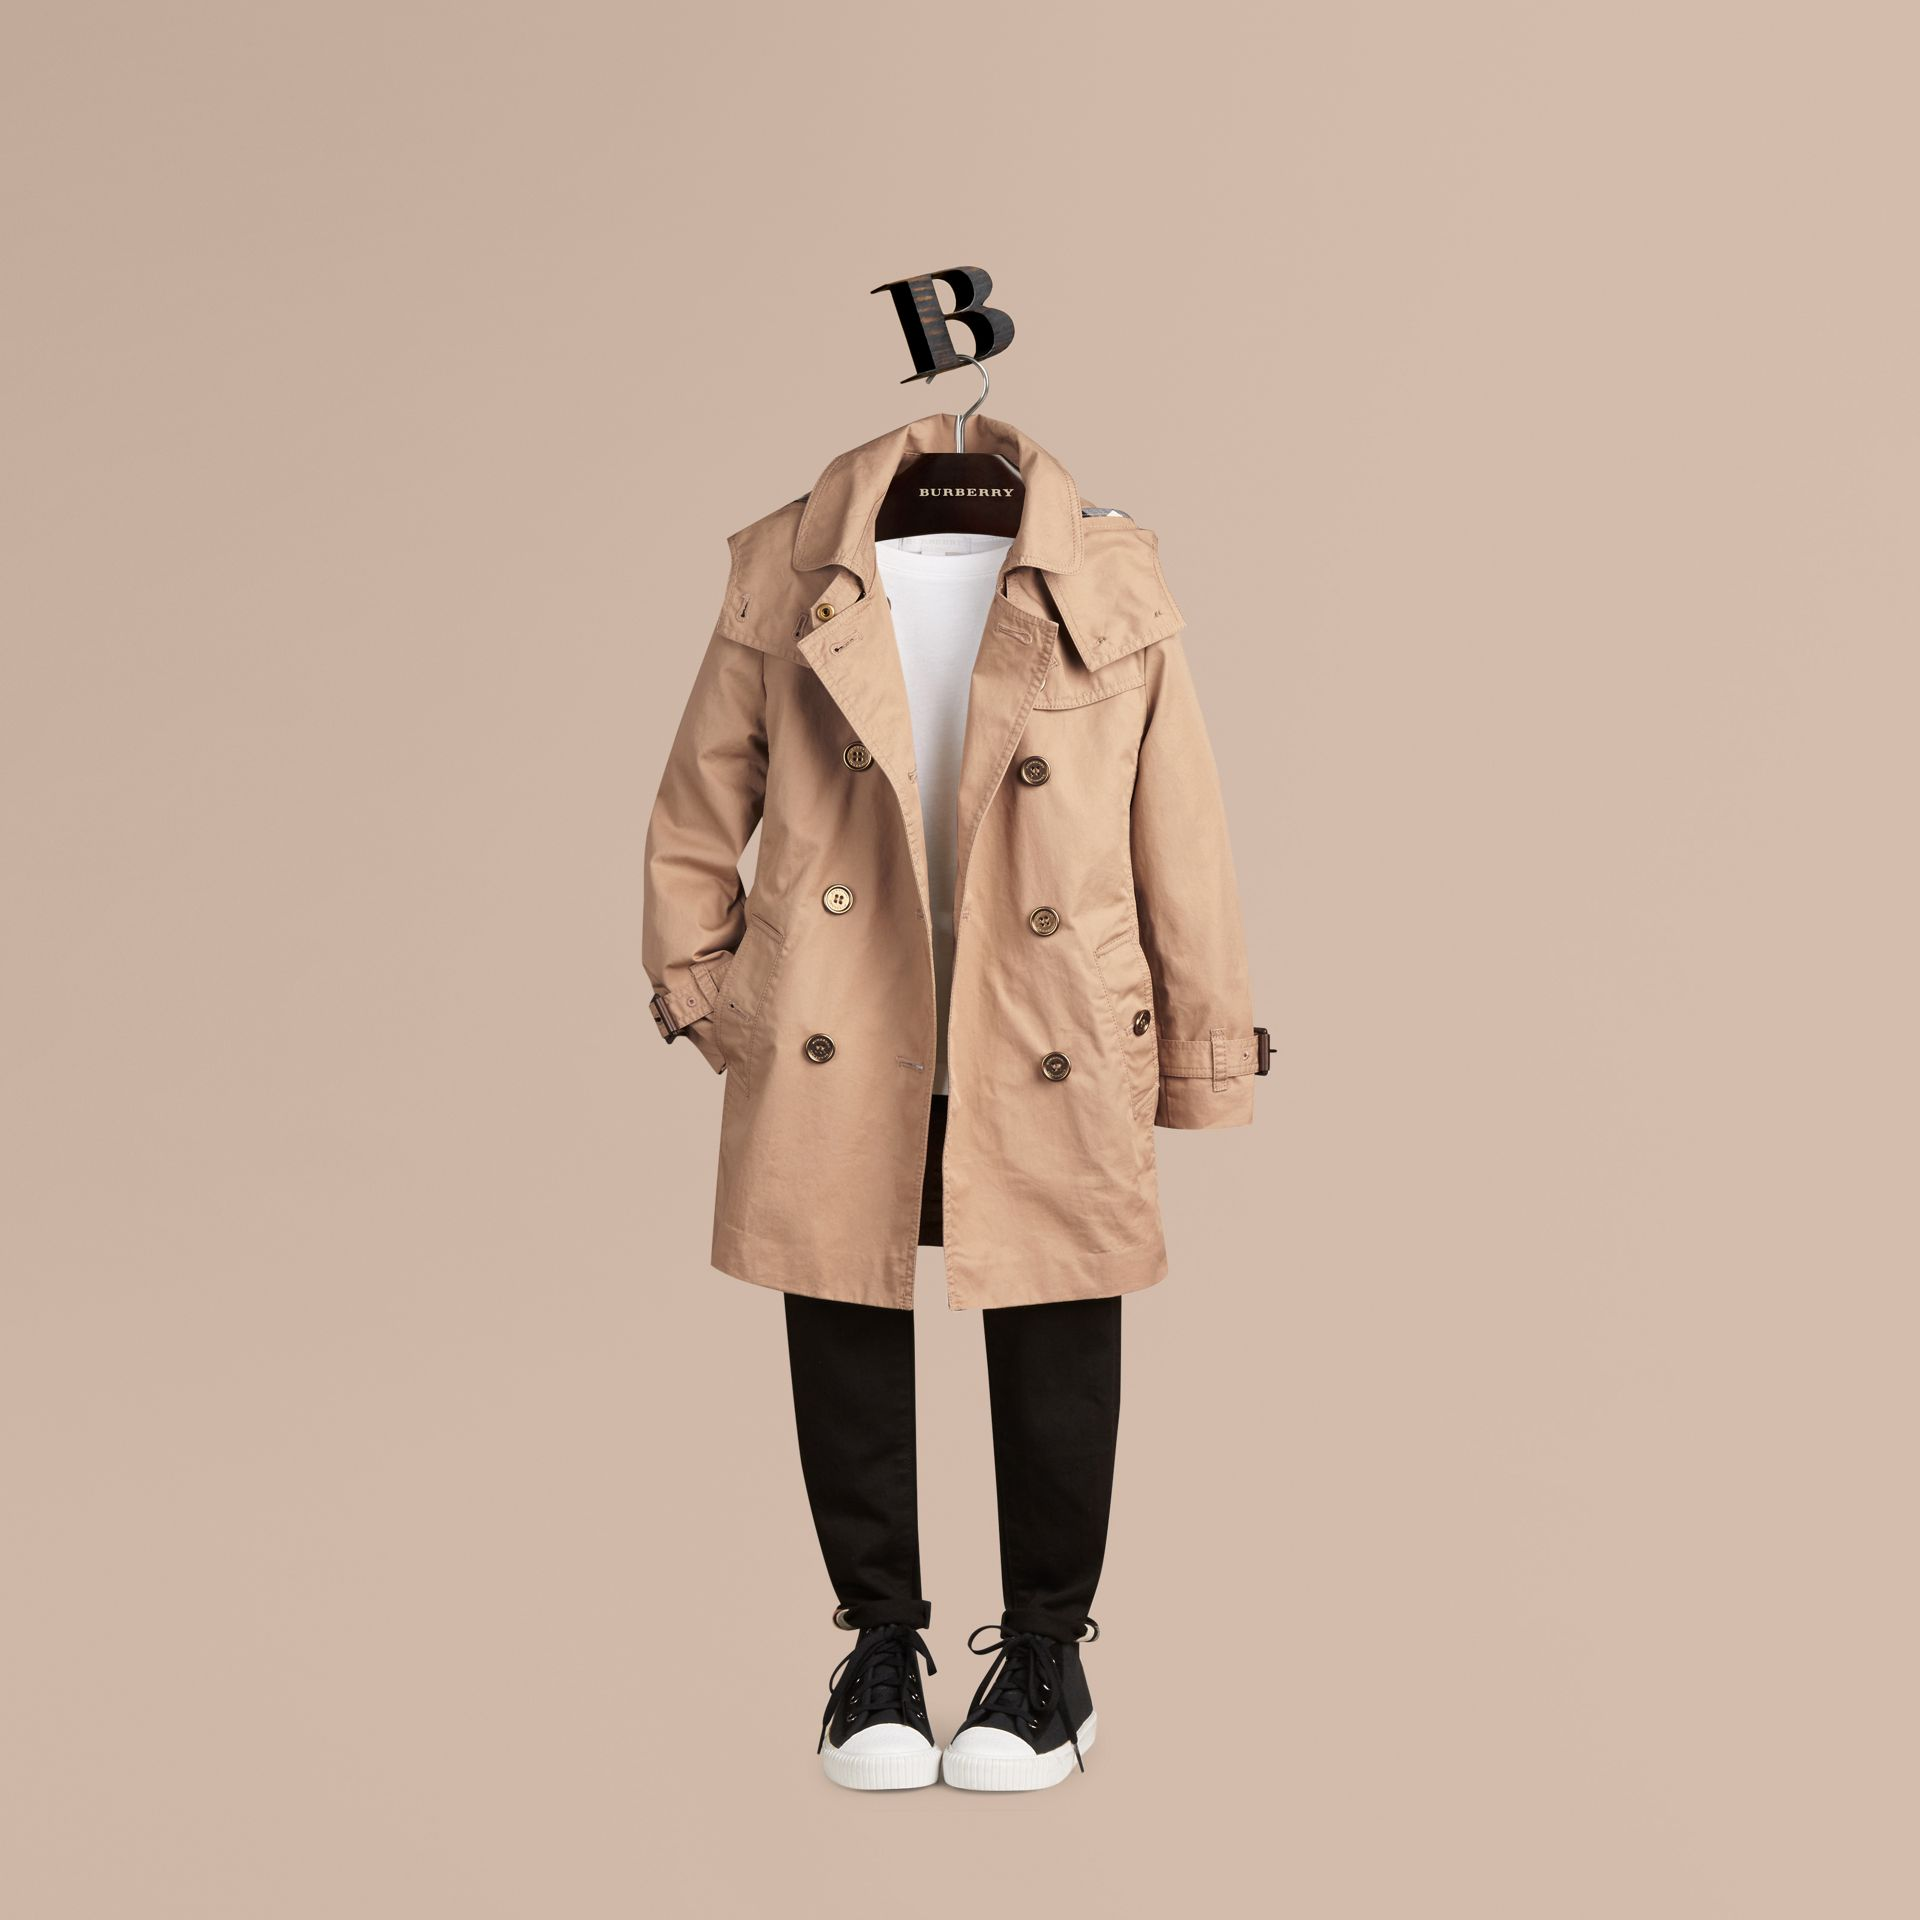 Miel Trench-coat à capuche amovible en sergé de coton - photo de la galerie 3